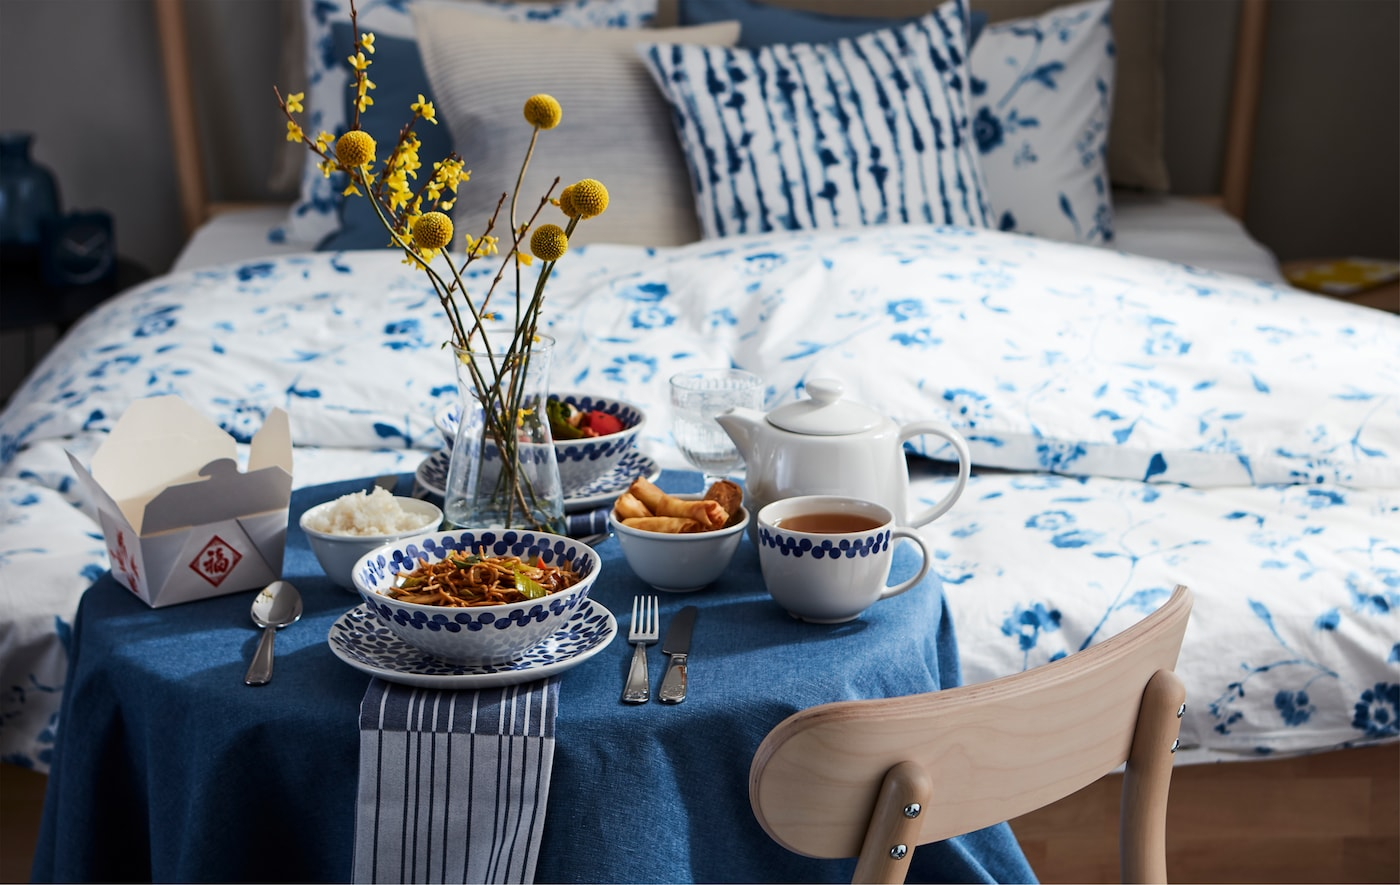 Cared-for dinner-for-one table setting with home-delivered food, enjoyed by your bed to add a room-service feeling.